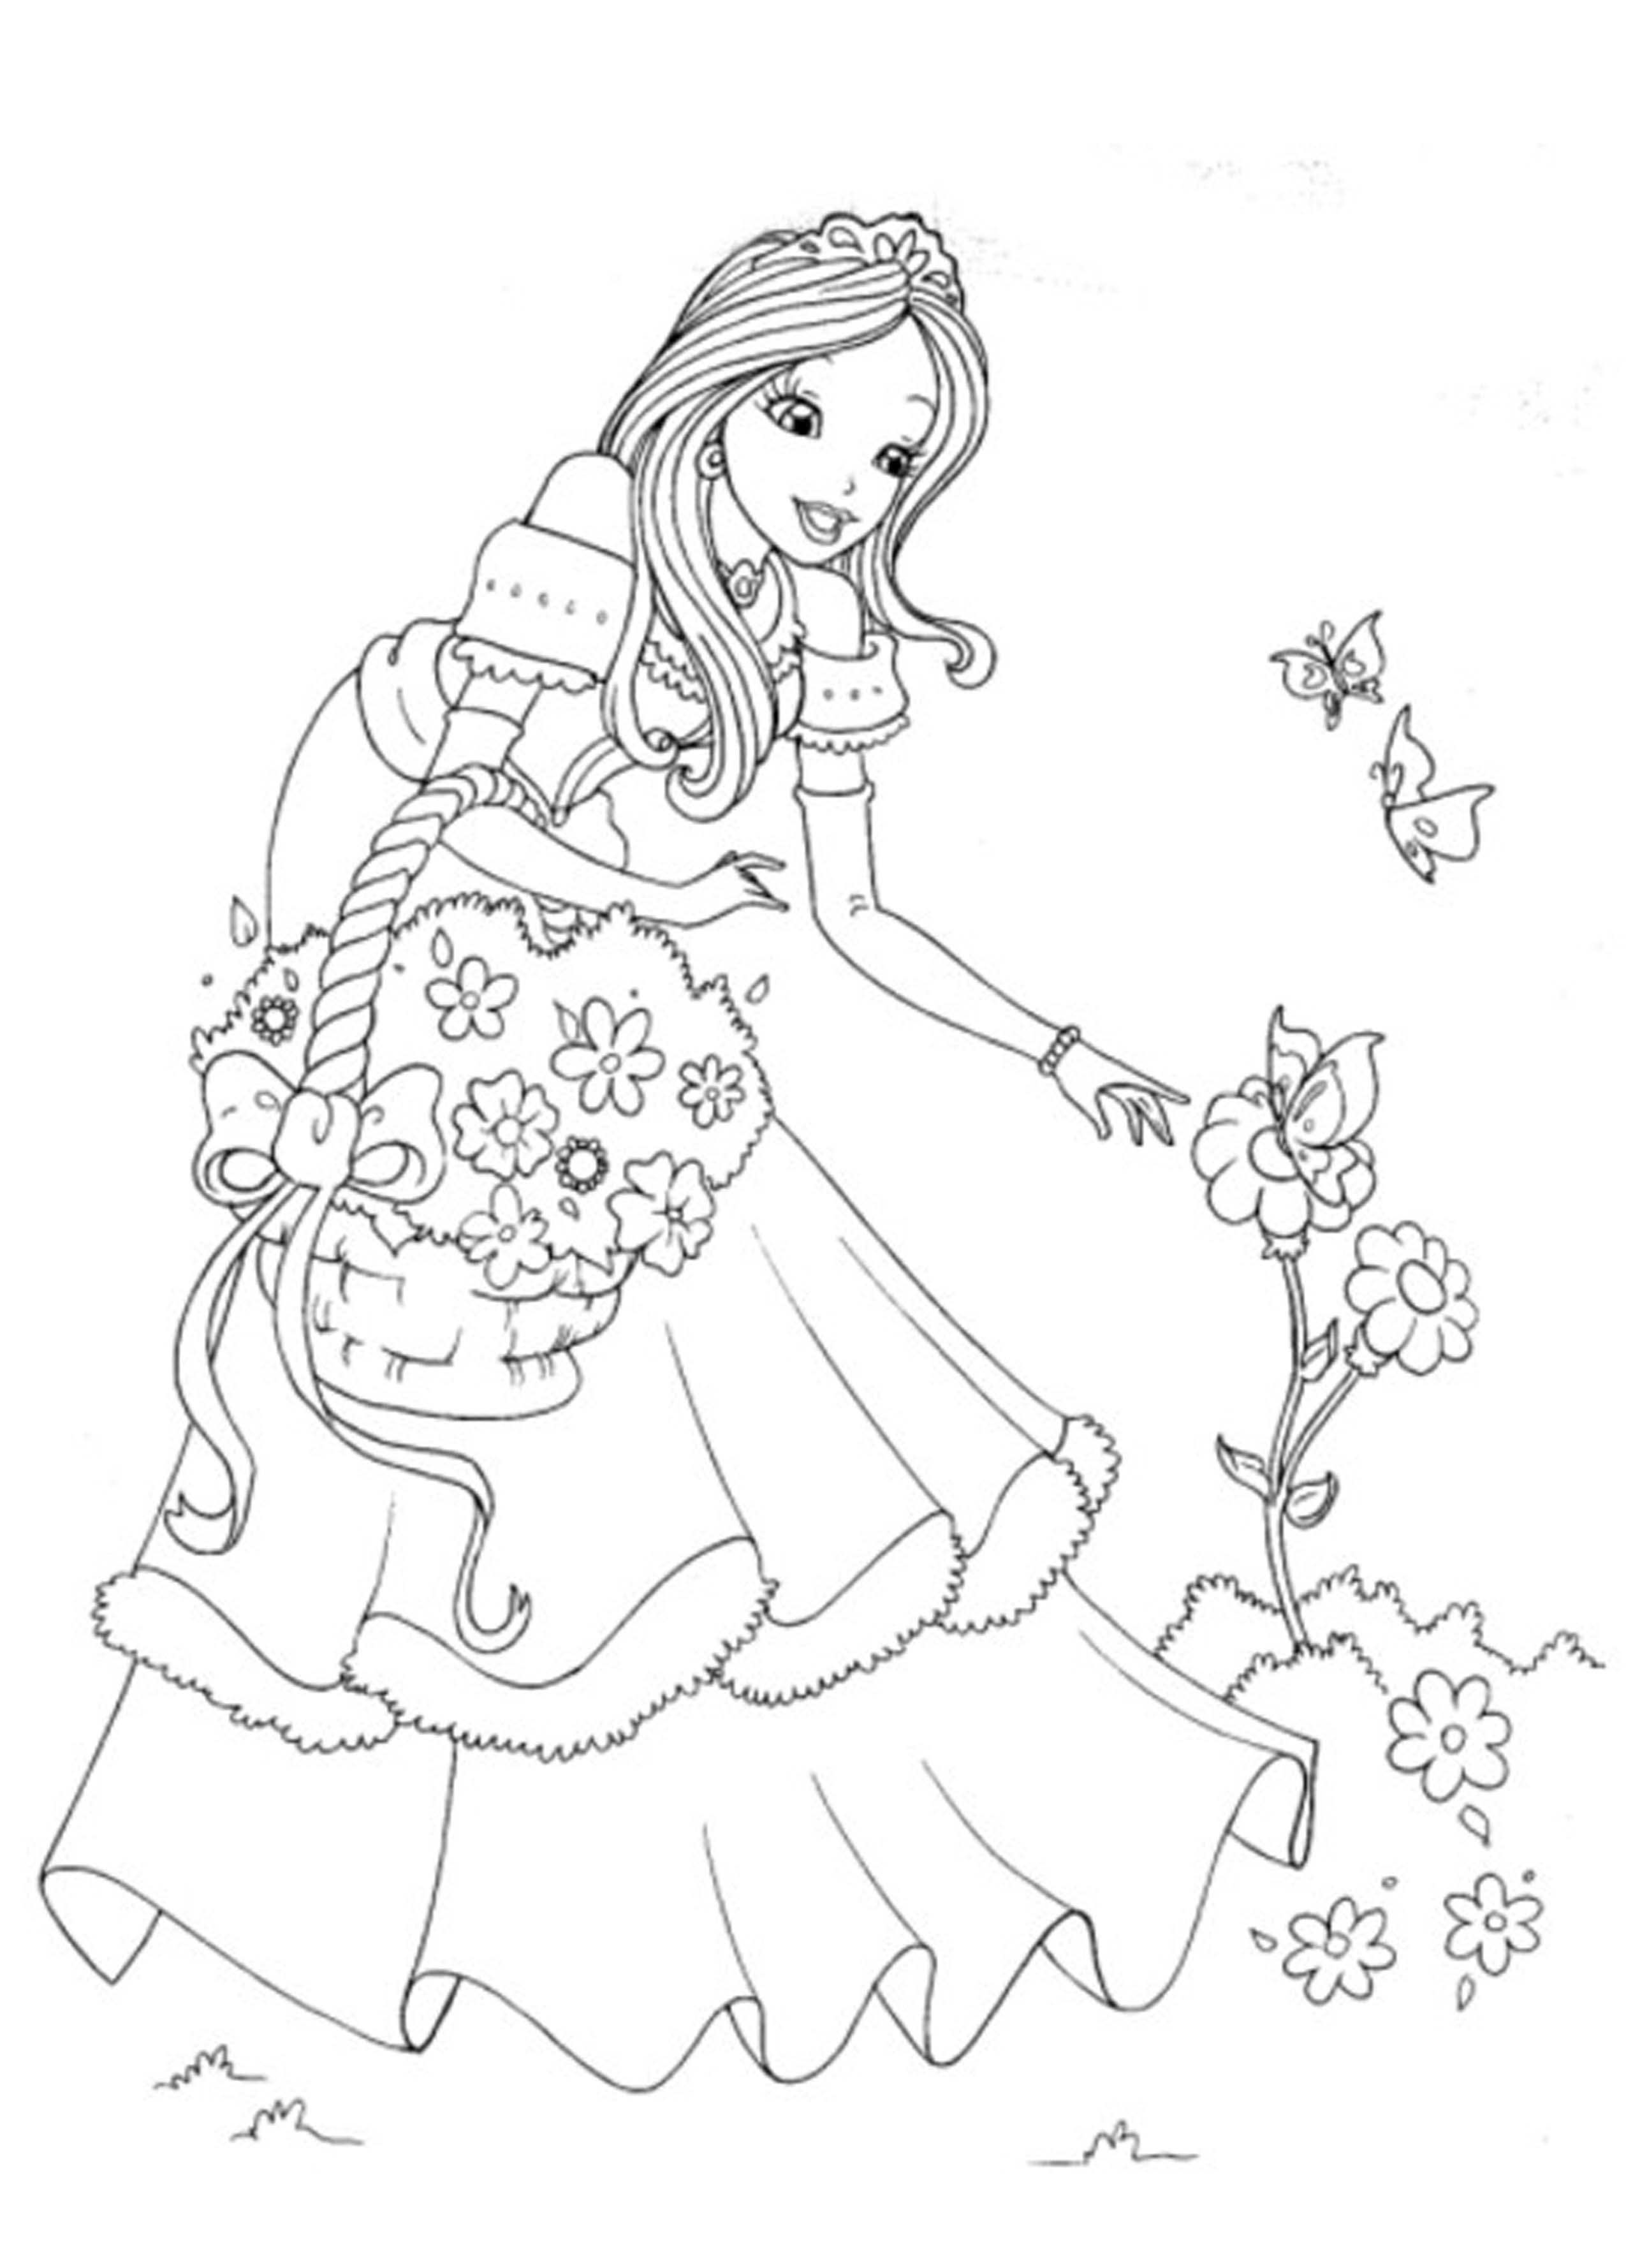 62 Printable Coloring Pages Of Disney Princesses Download Free Images